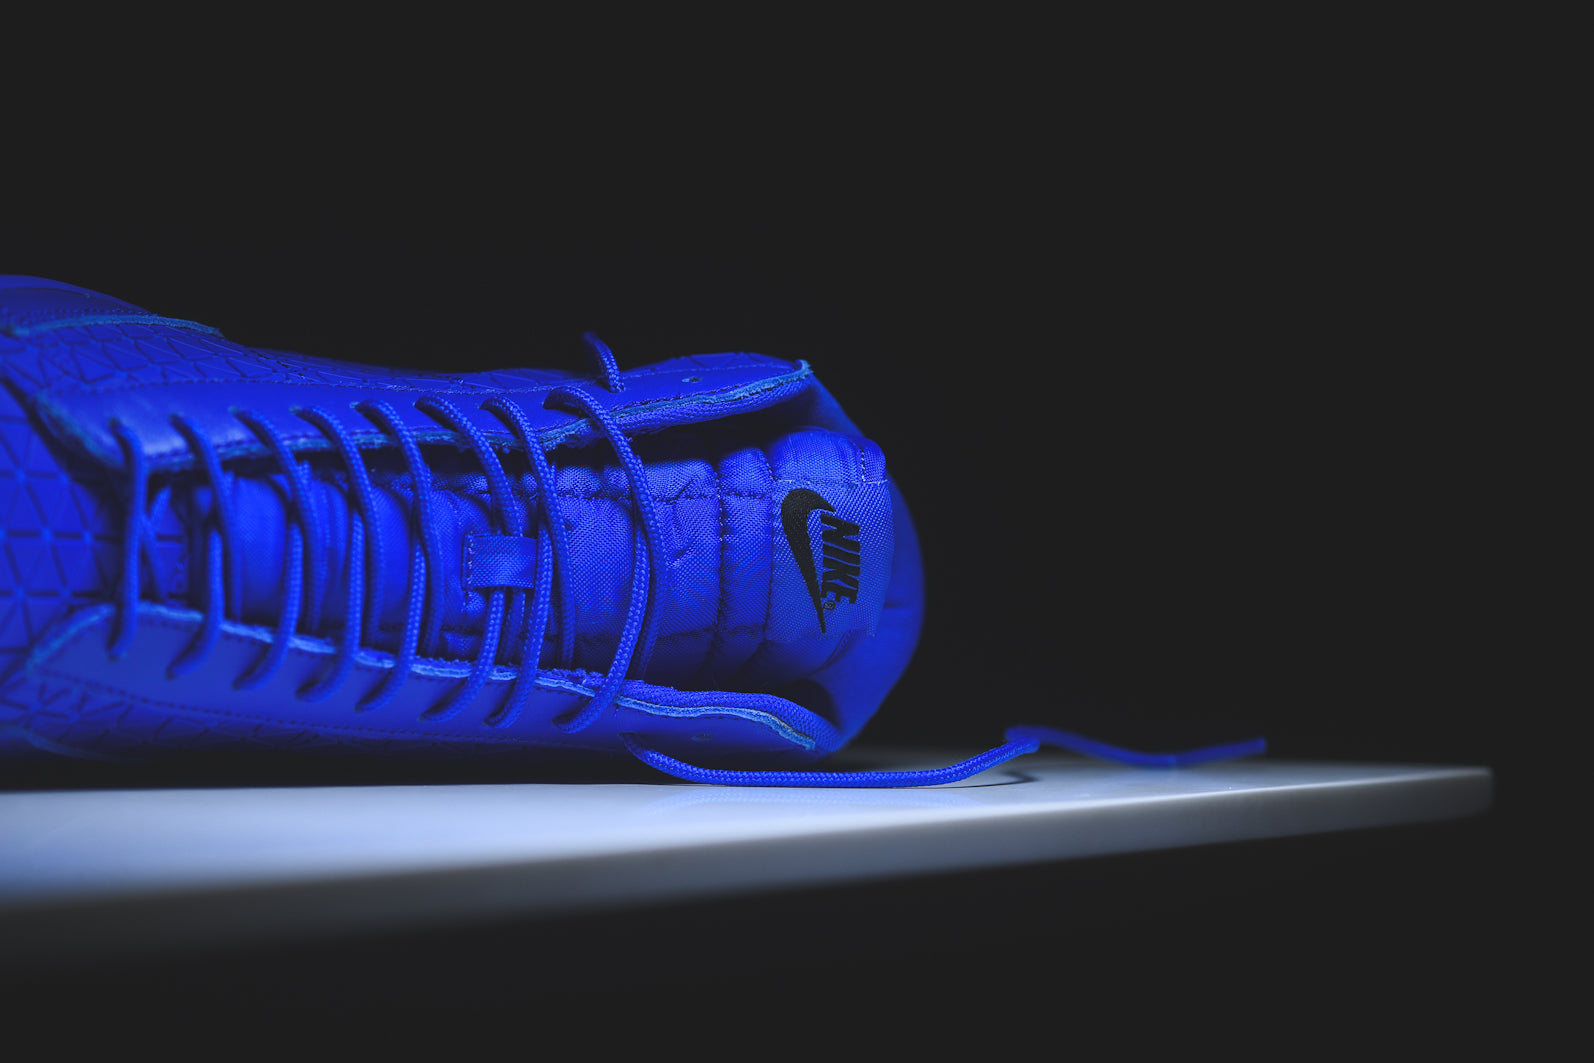 sale retailer fc293 dfb4d The Blazer Mid returns in its Metric variation in its latest quickstrike  release. Contrasting the previous black model, this version features a royal  blue ...